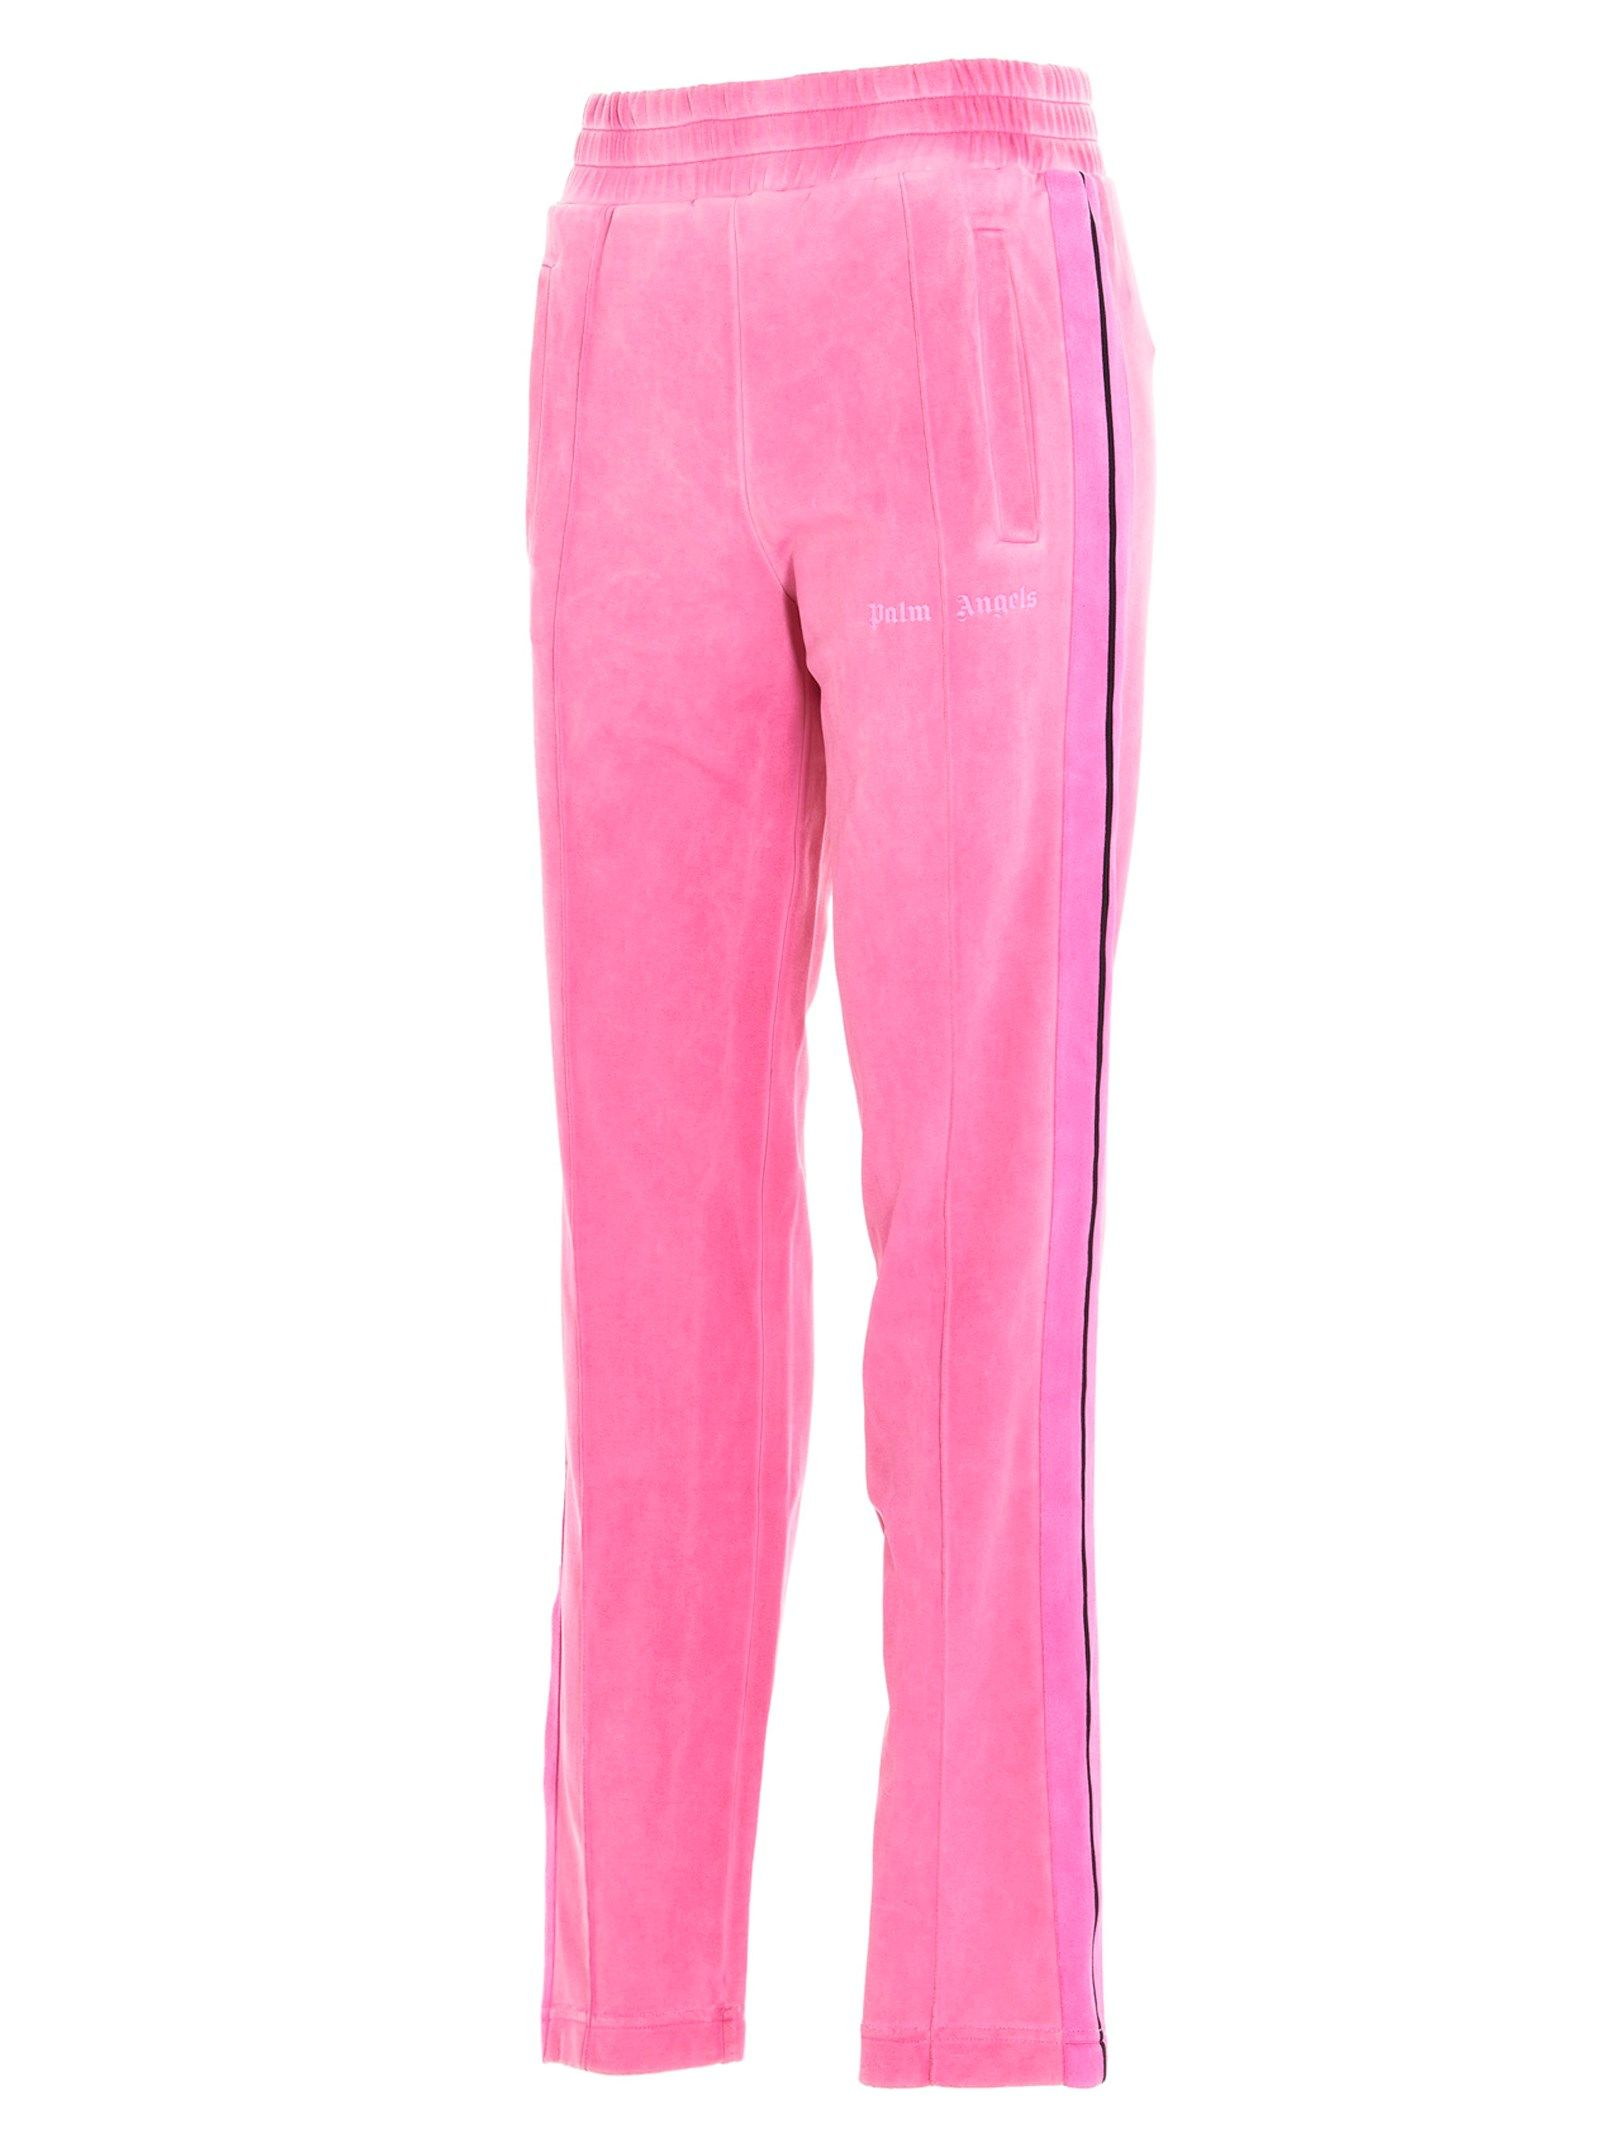 PALM ANGELS Track pants PALM ANGELS WOMEN'S FUCHSIA POLYAMIDE JOGGERS